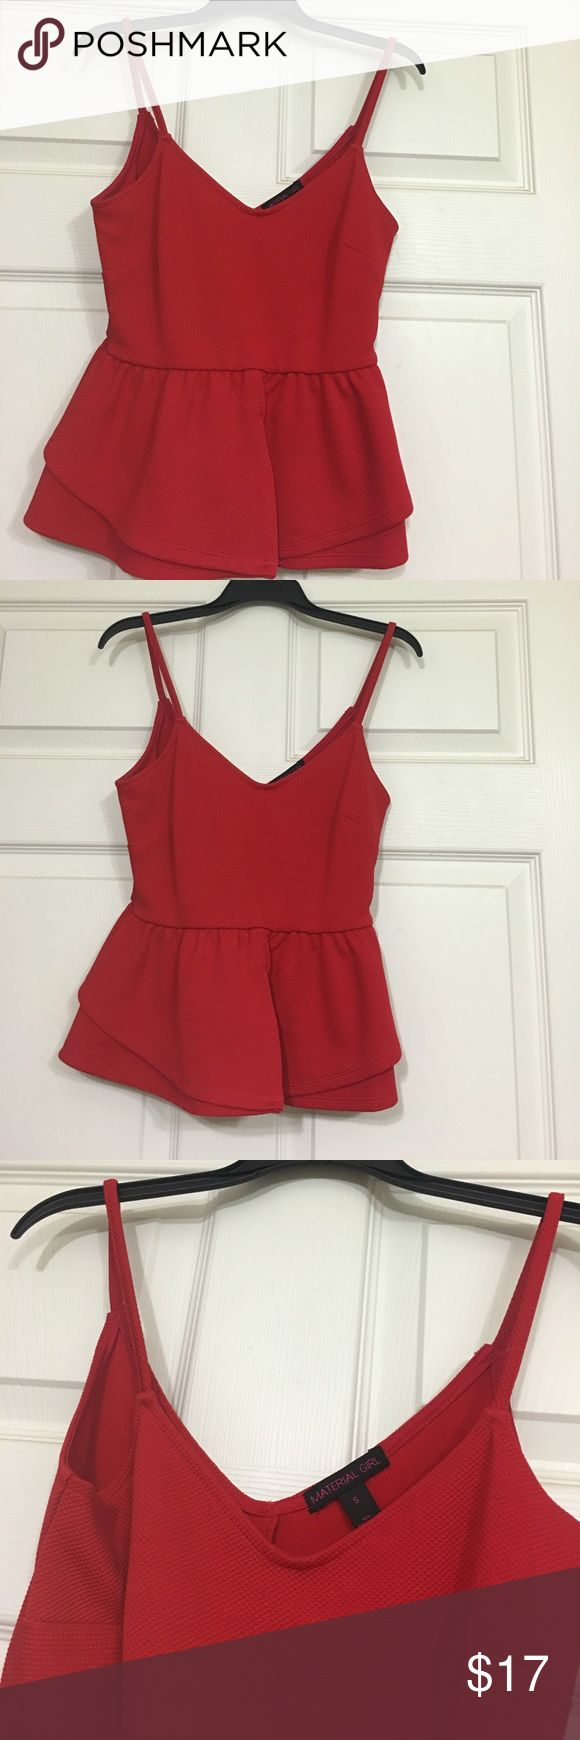 Red peplum top Red Material girl red peplum top! Adorable top! Only worn one time! Size small. Material Girl Tops Tank Tops